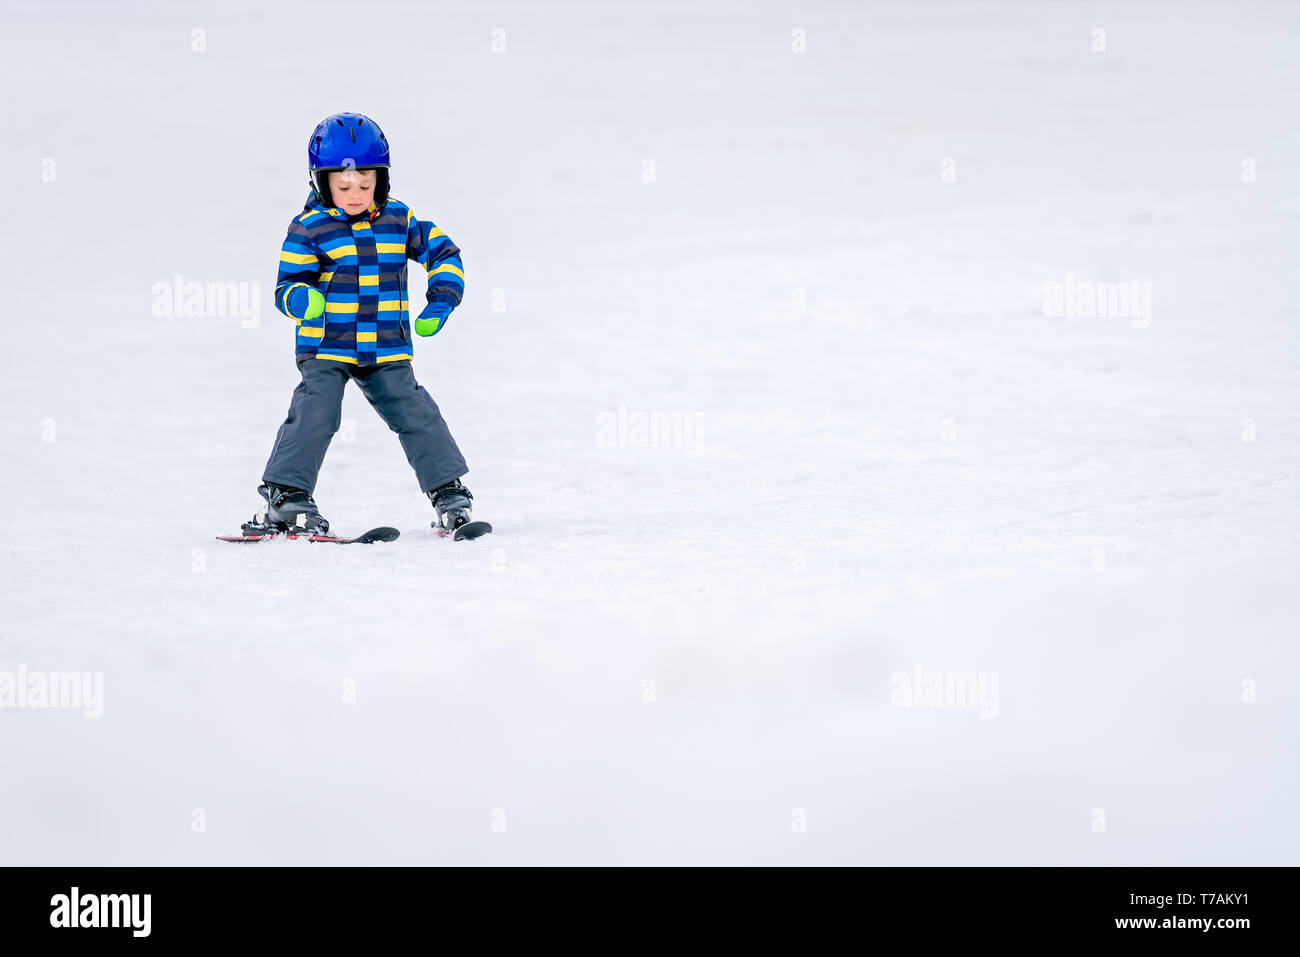 Little boy skiing unassisted for the first time - Stock Image